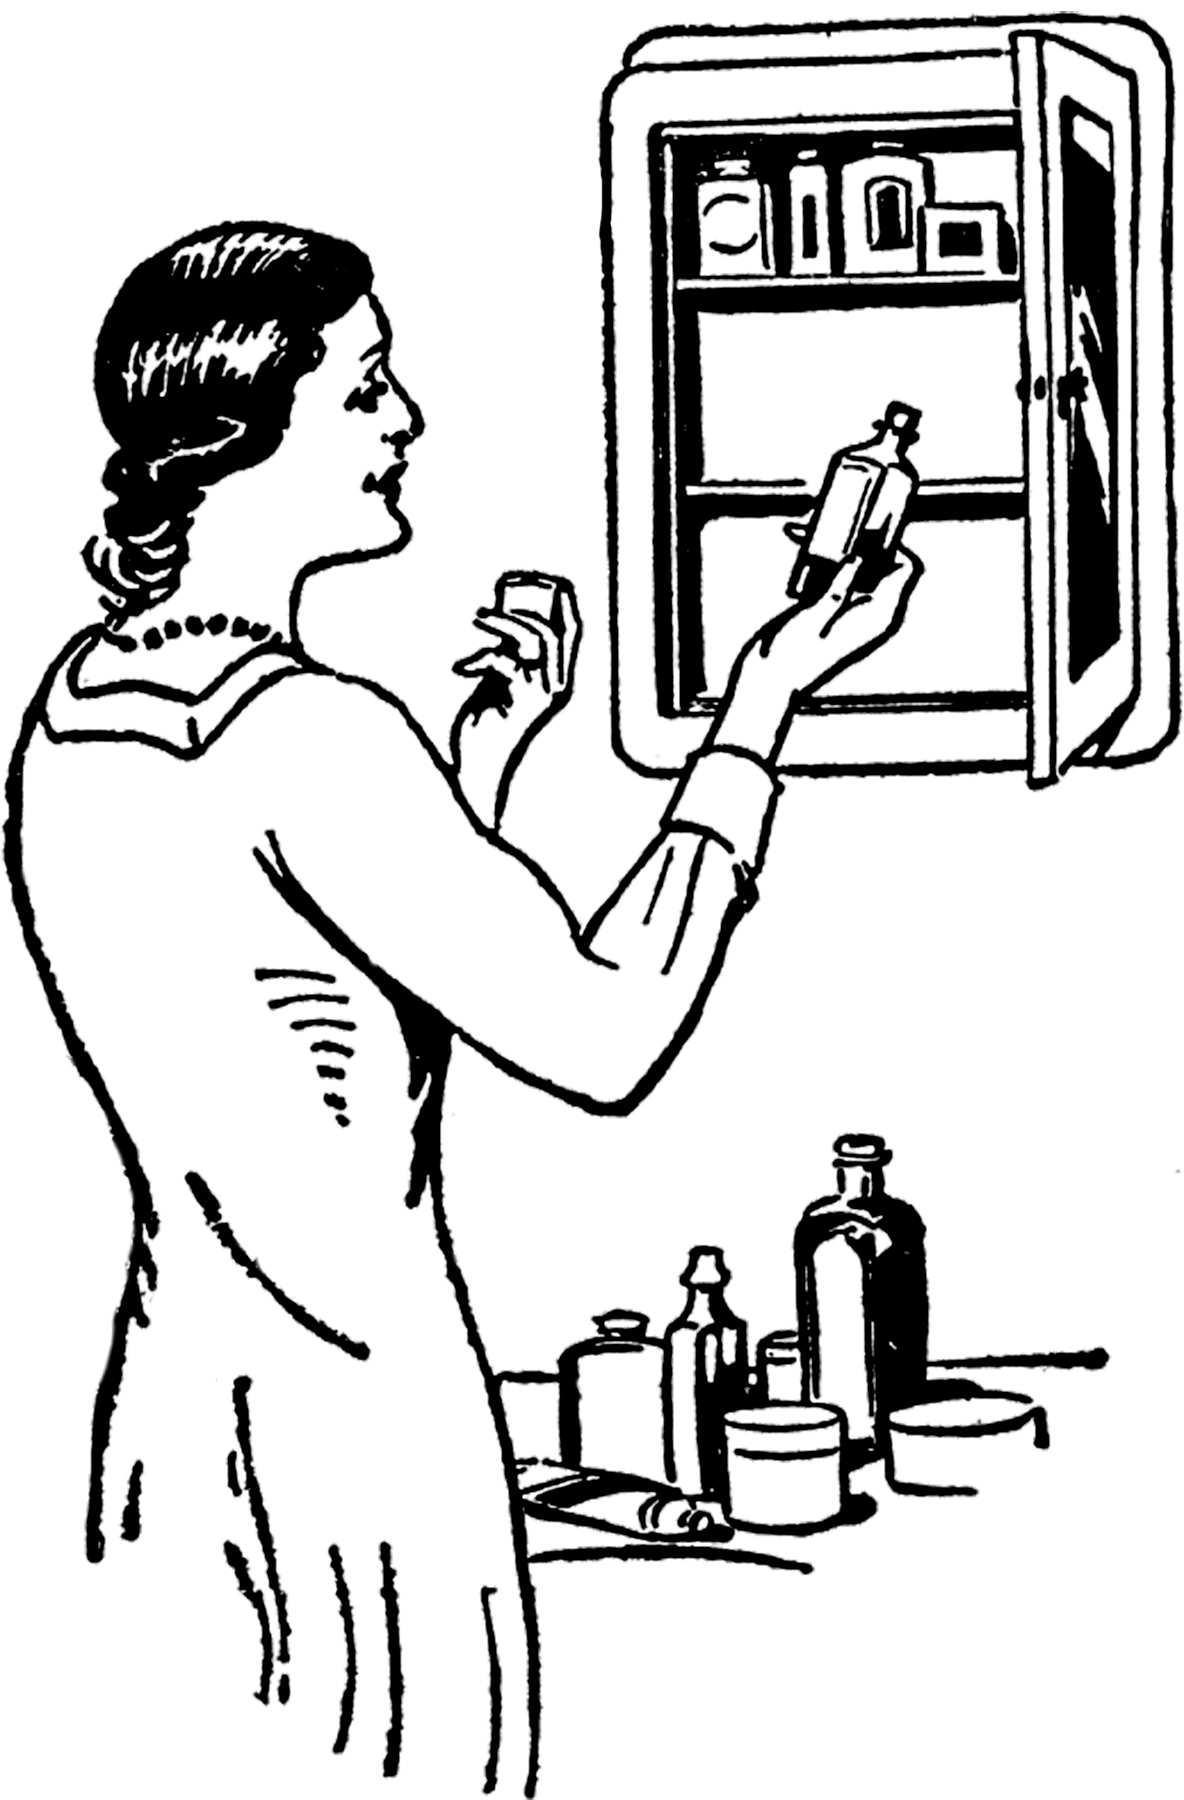 Vintage Medicine Cabinet Image The Graphics Fairy